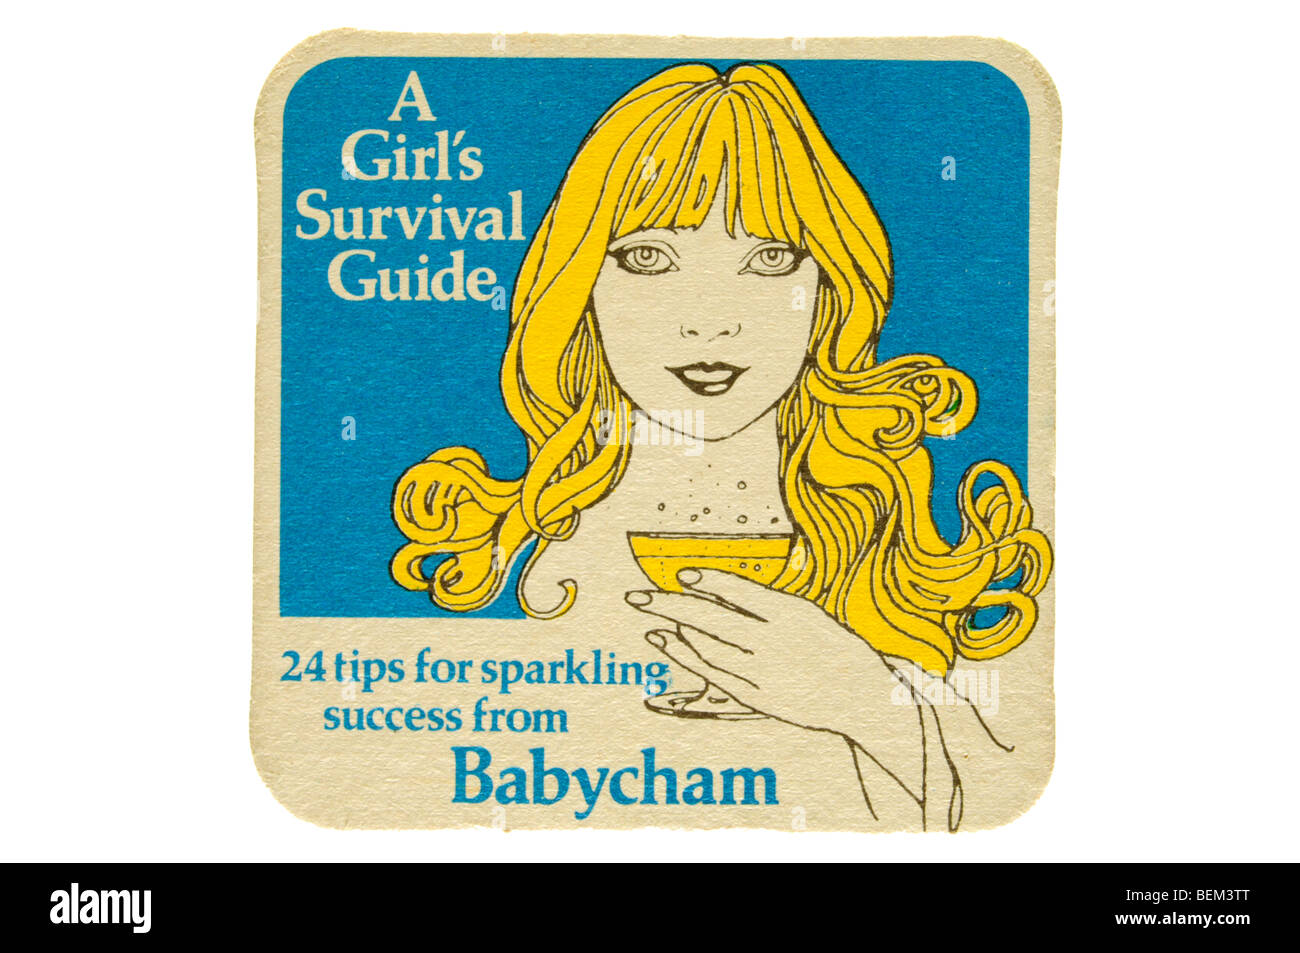 a girls survival guide 24 tips for sparkling success from babycham - Stock Image